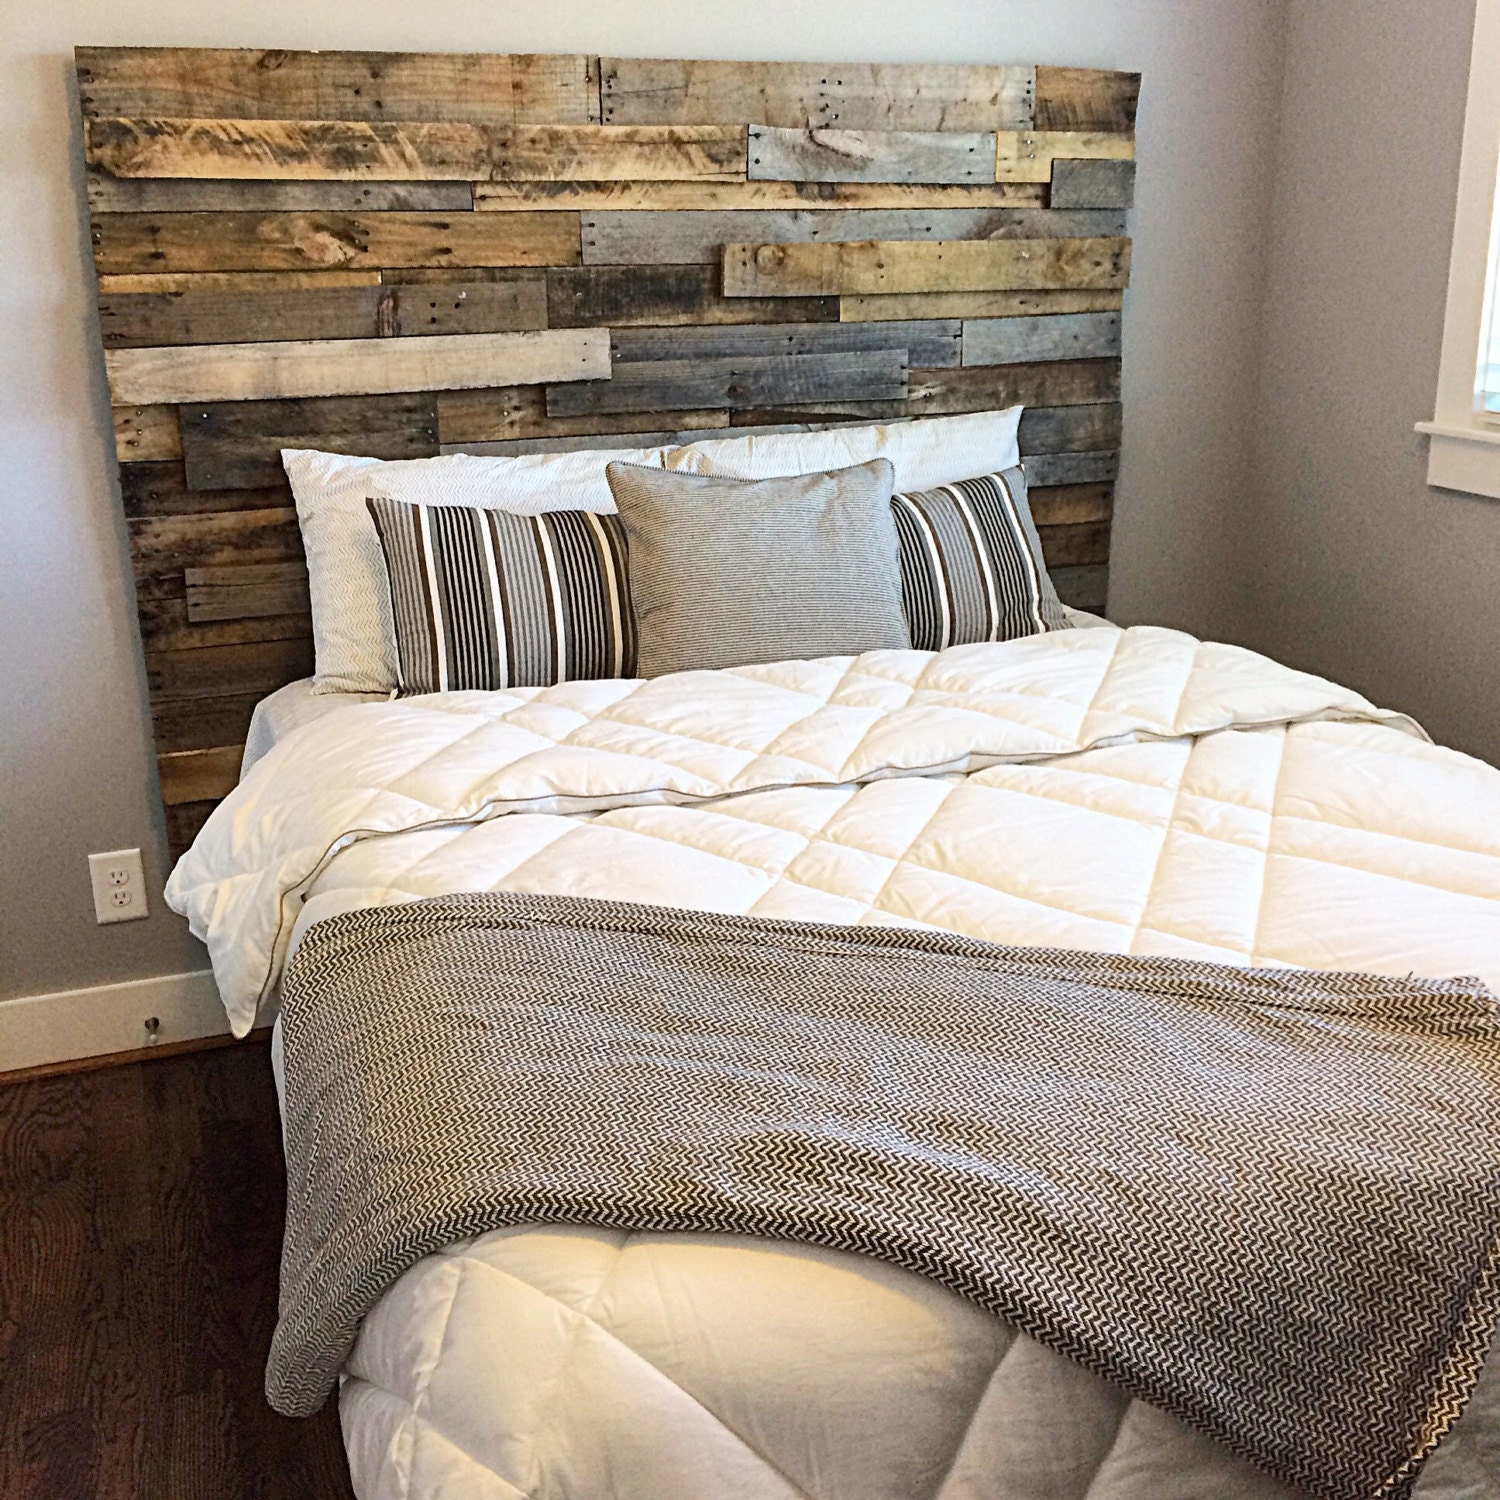 reclaimed pallet wood mosaic headboard. Black Bedroom Furniture Sets. Home Design Ideas